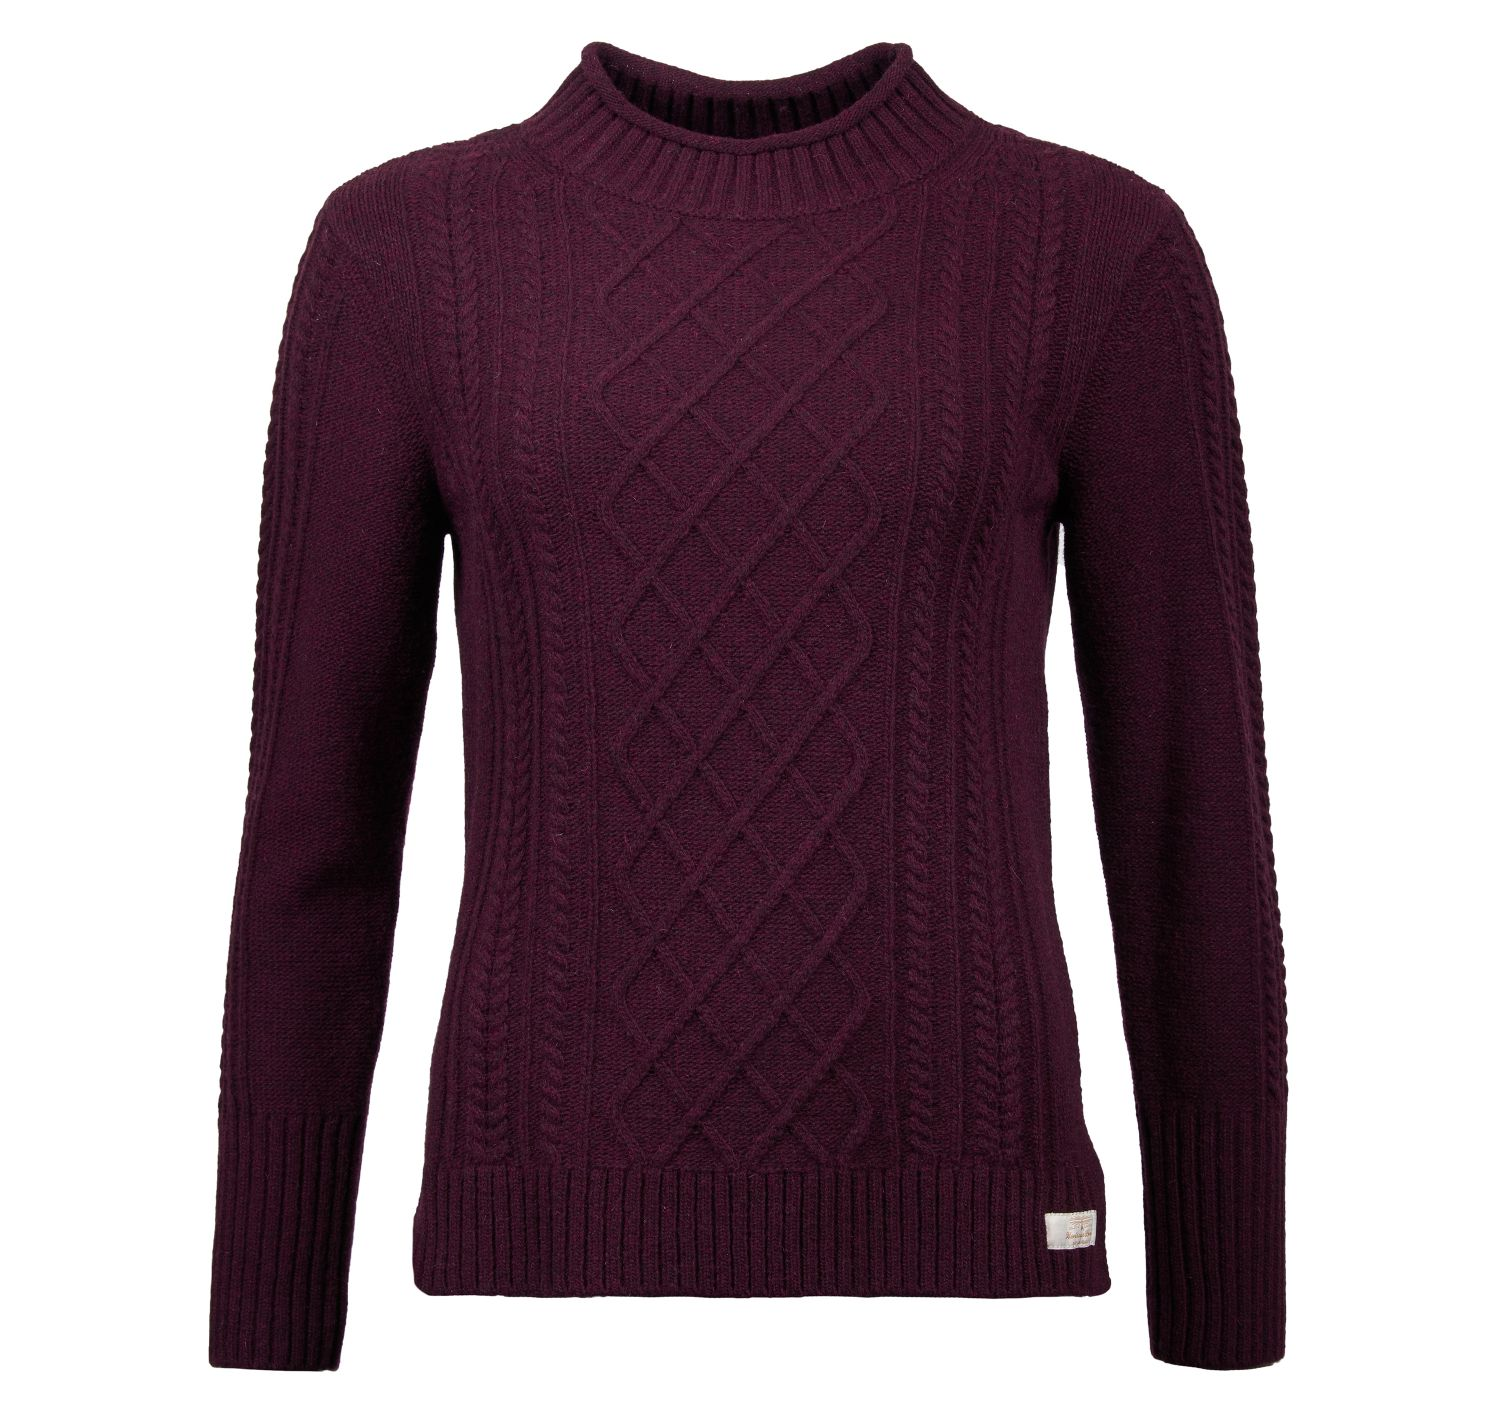 Barbour Barbour Tyneside Knit Sweater Aubergine Barbour International